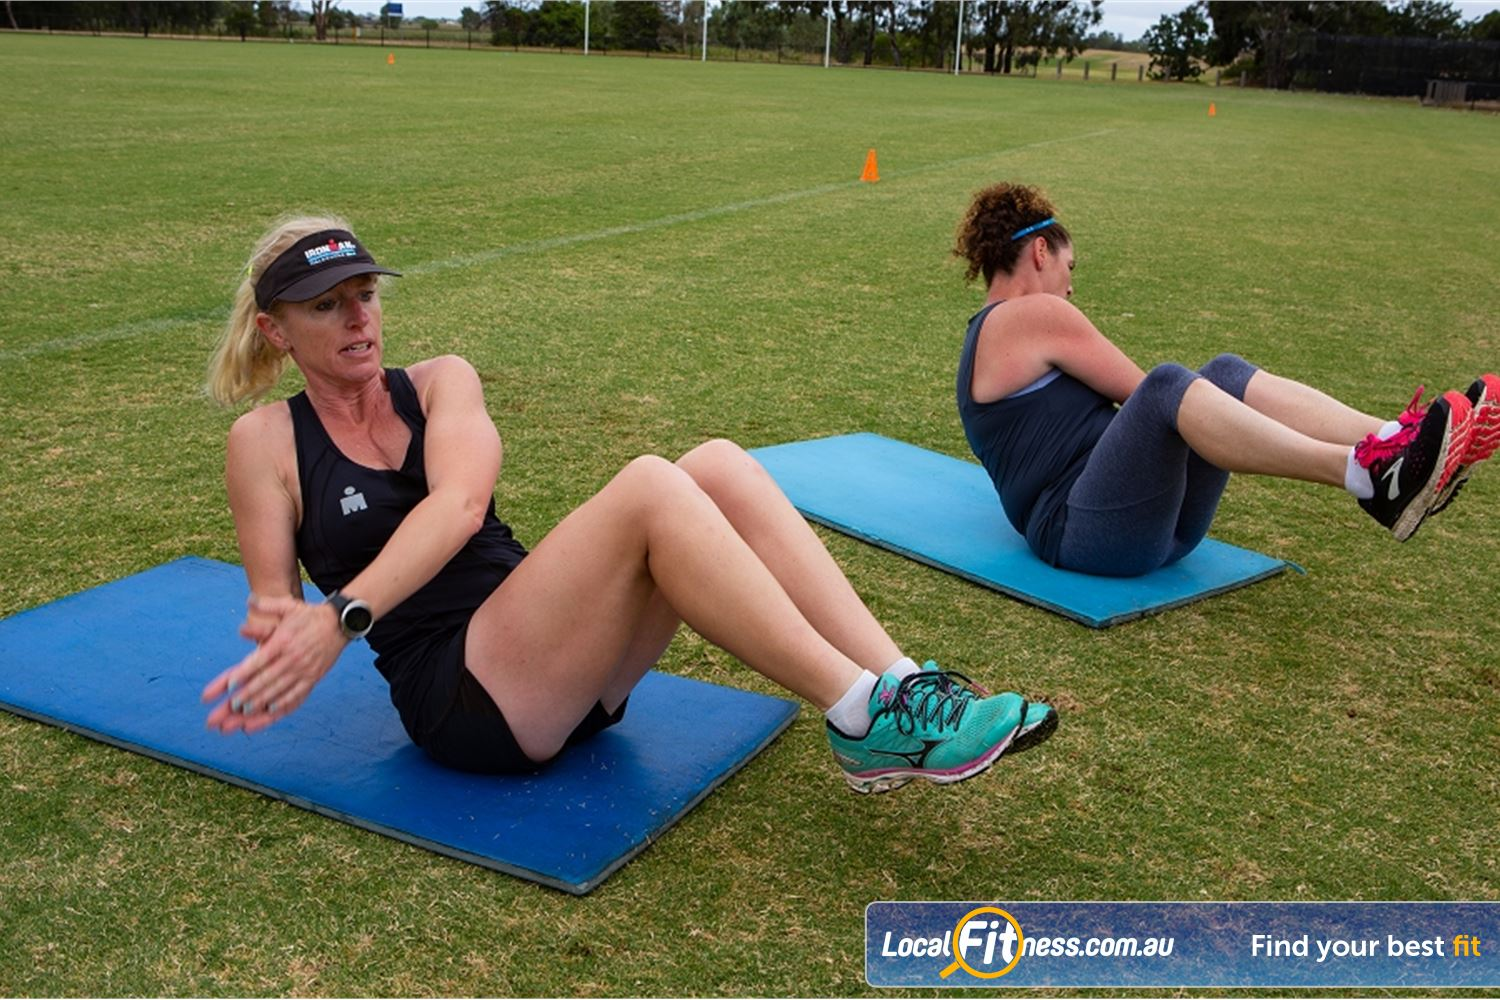 Step into Life Near Yeerongpilly Strengthen your core and abs with out Graceville outdoor fitness classes.